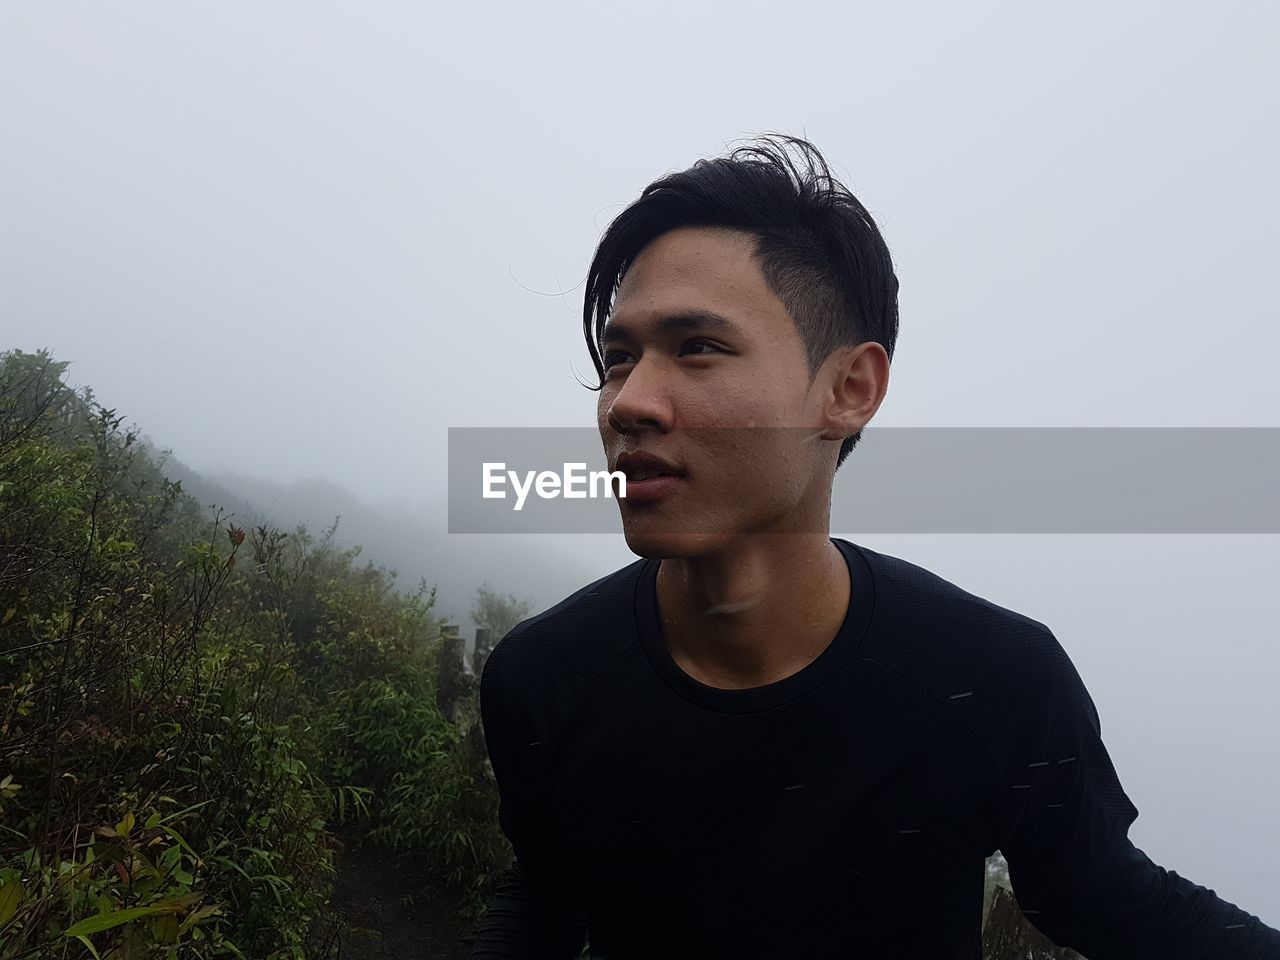 Young Man Against Mountain During Foggy Weather